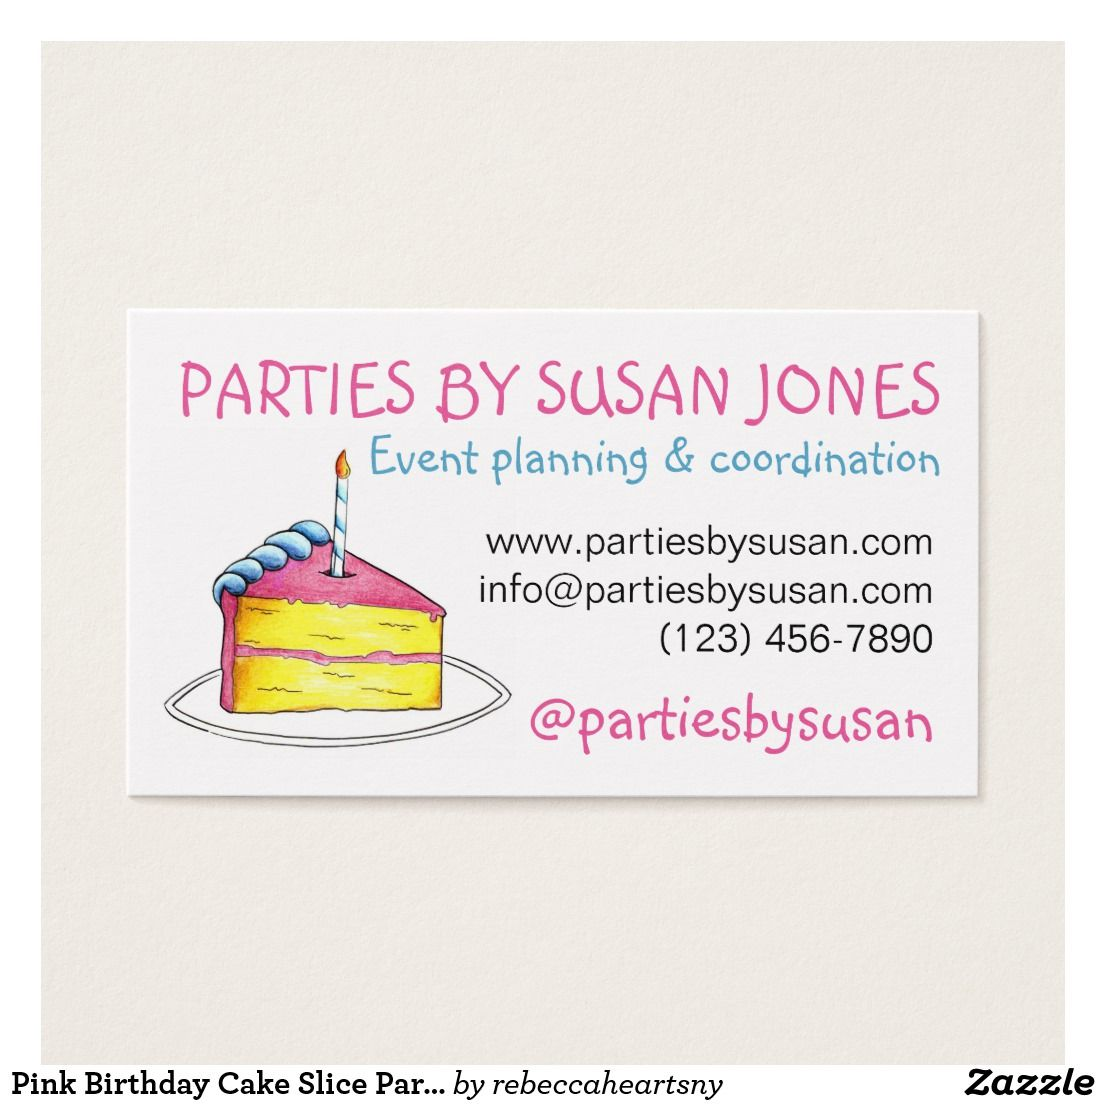 Pink Birthday Cake Slice Party Event Planner Business Card